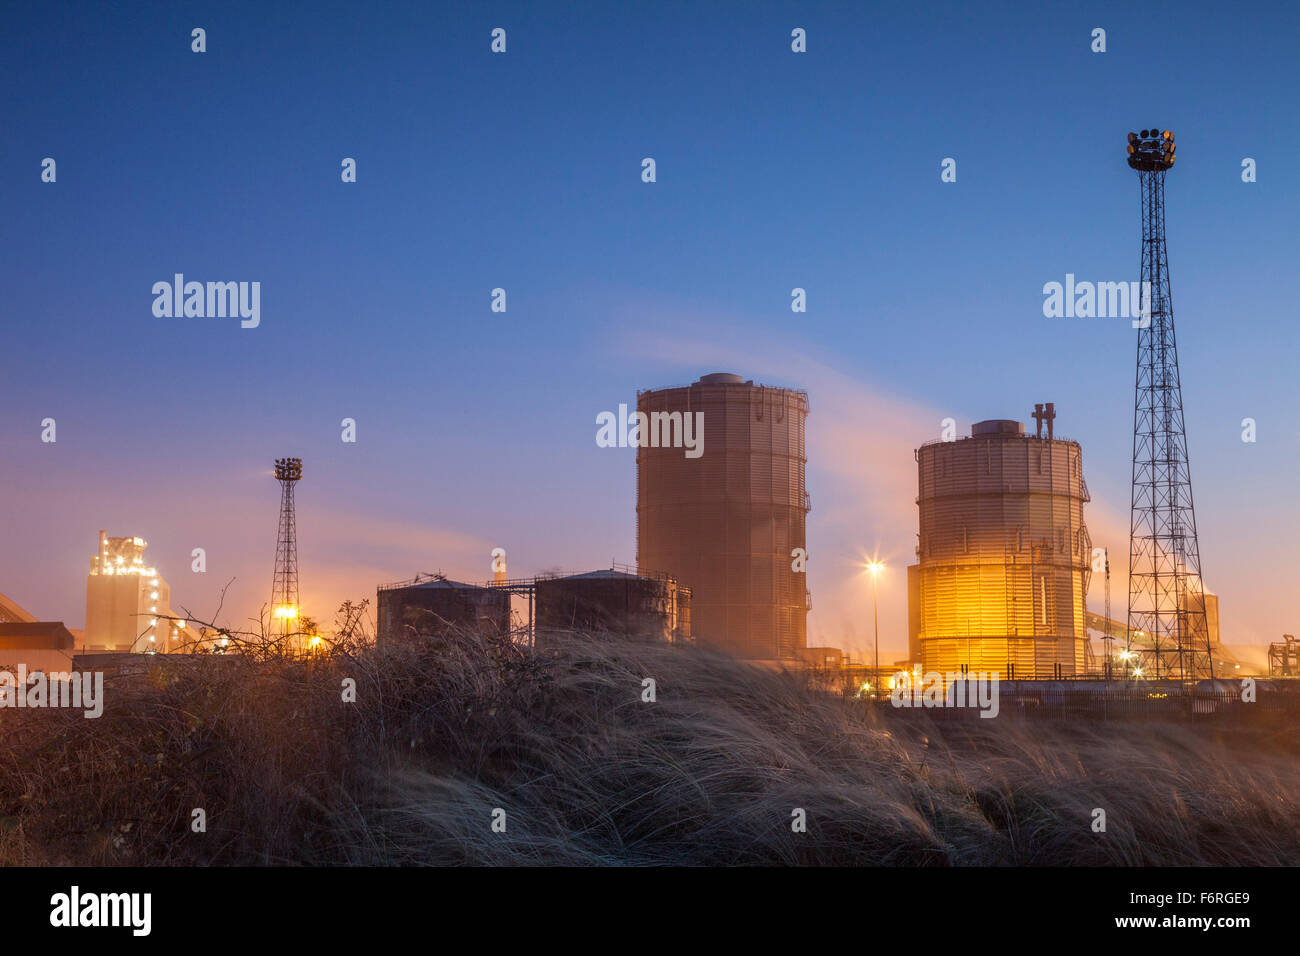 Evening at Redcar steelworks, early 2015. - Stock Image